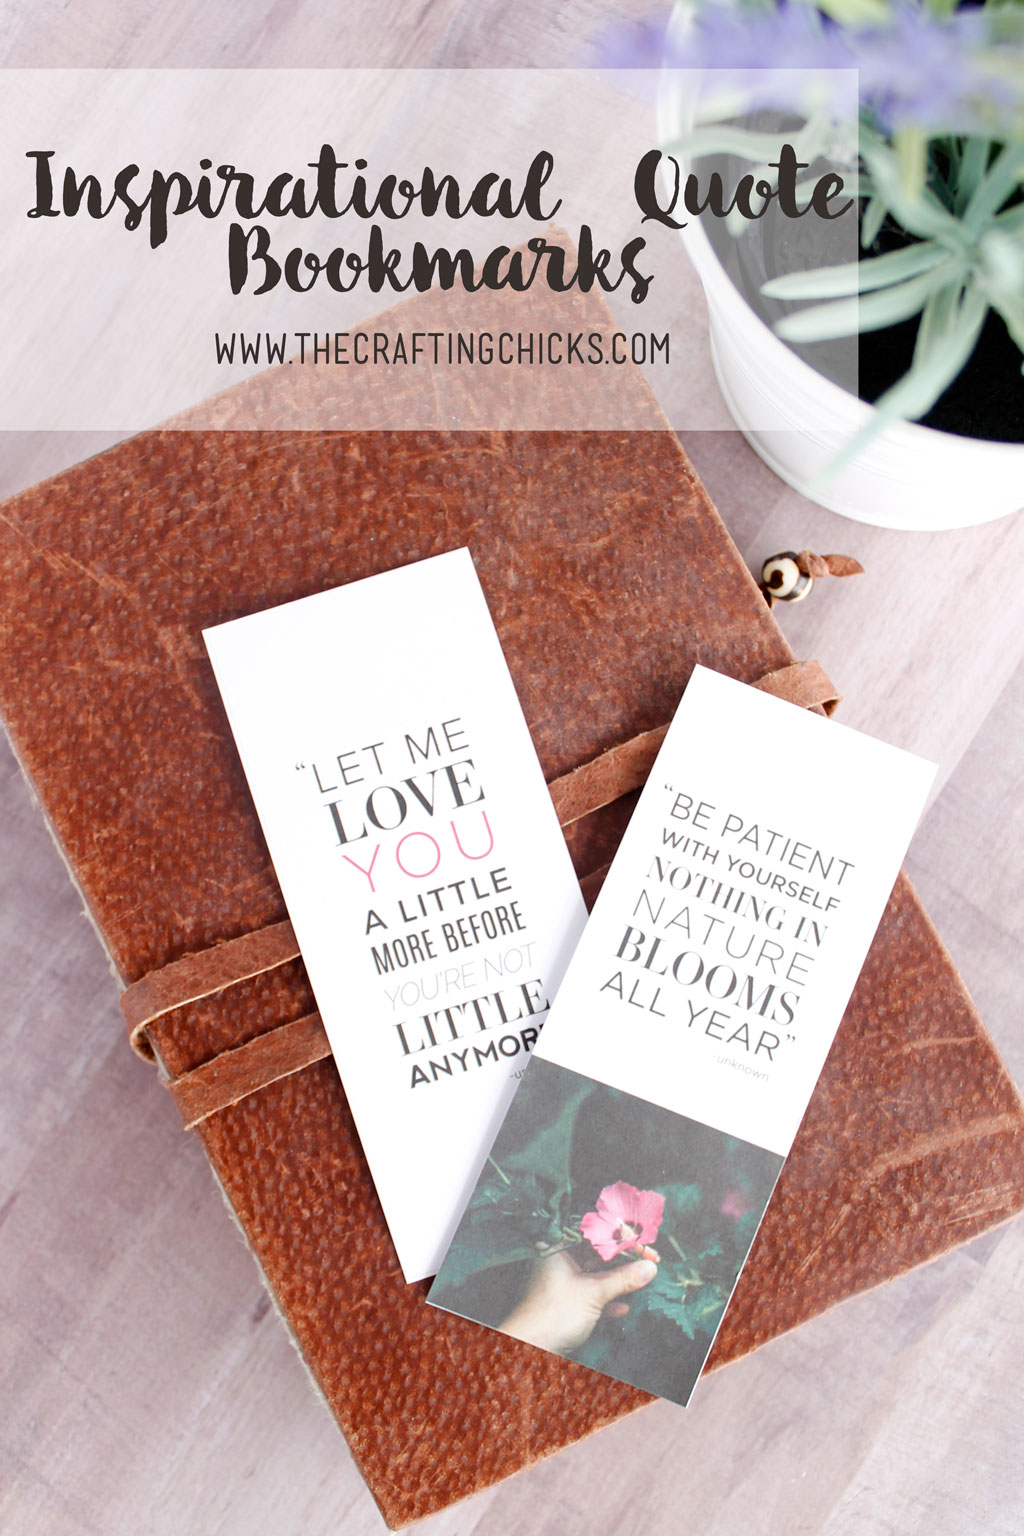 Inspirational Quotes Free Printable Bookmarks The Crafting Chicks